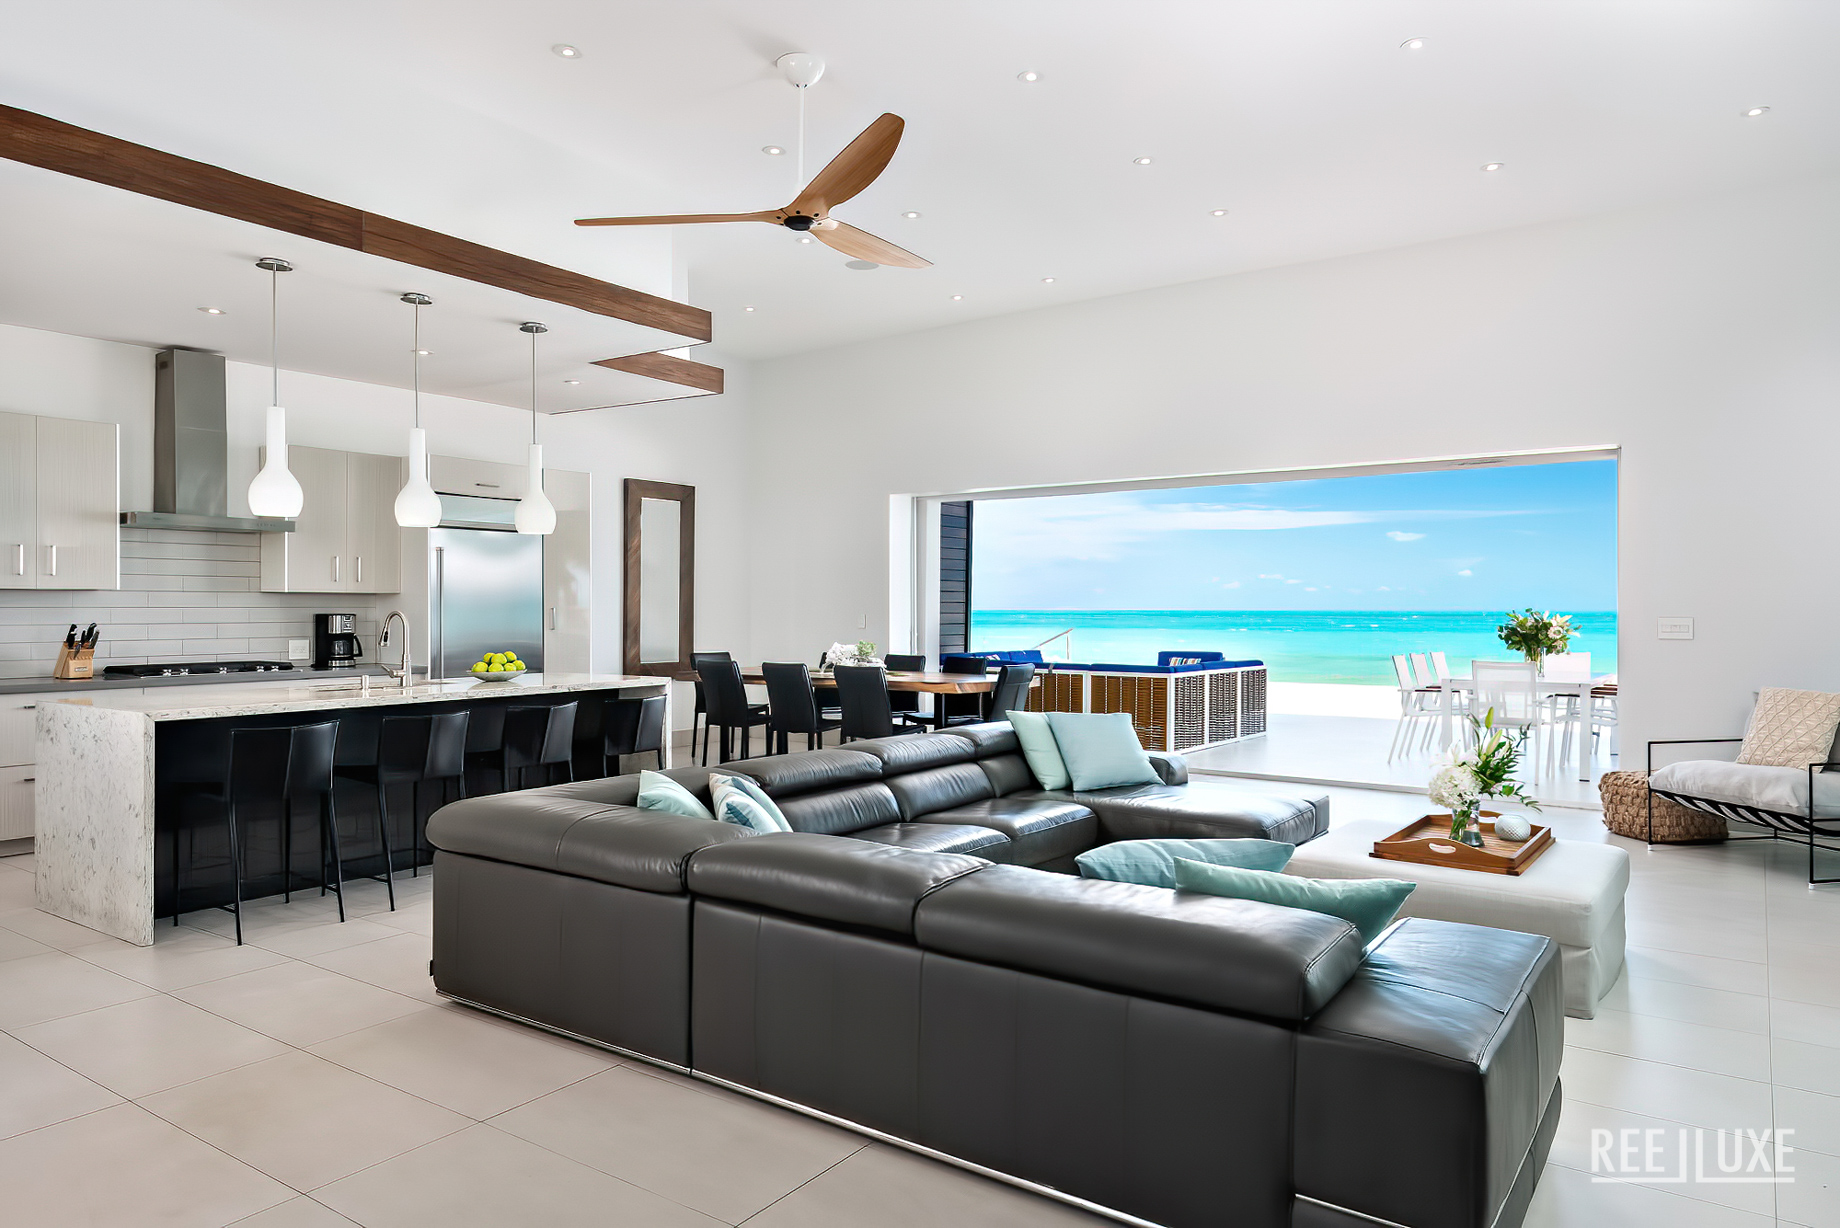 Tip of the Tail Luxury Villa - Providenciales, Turks and Caicos Islands